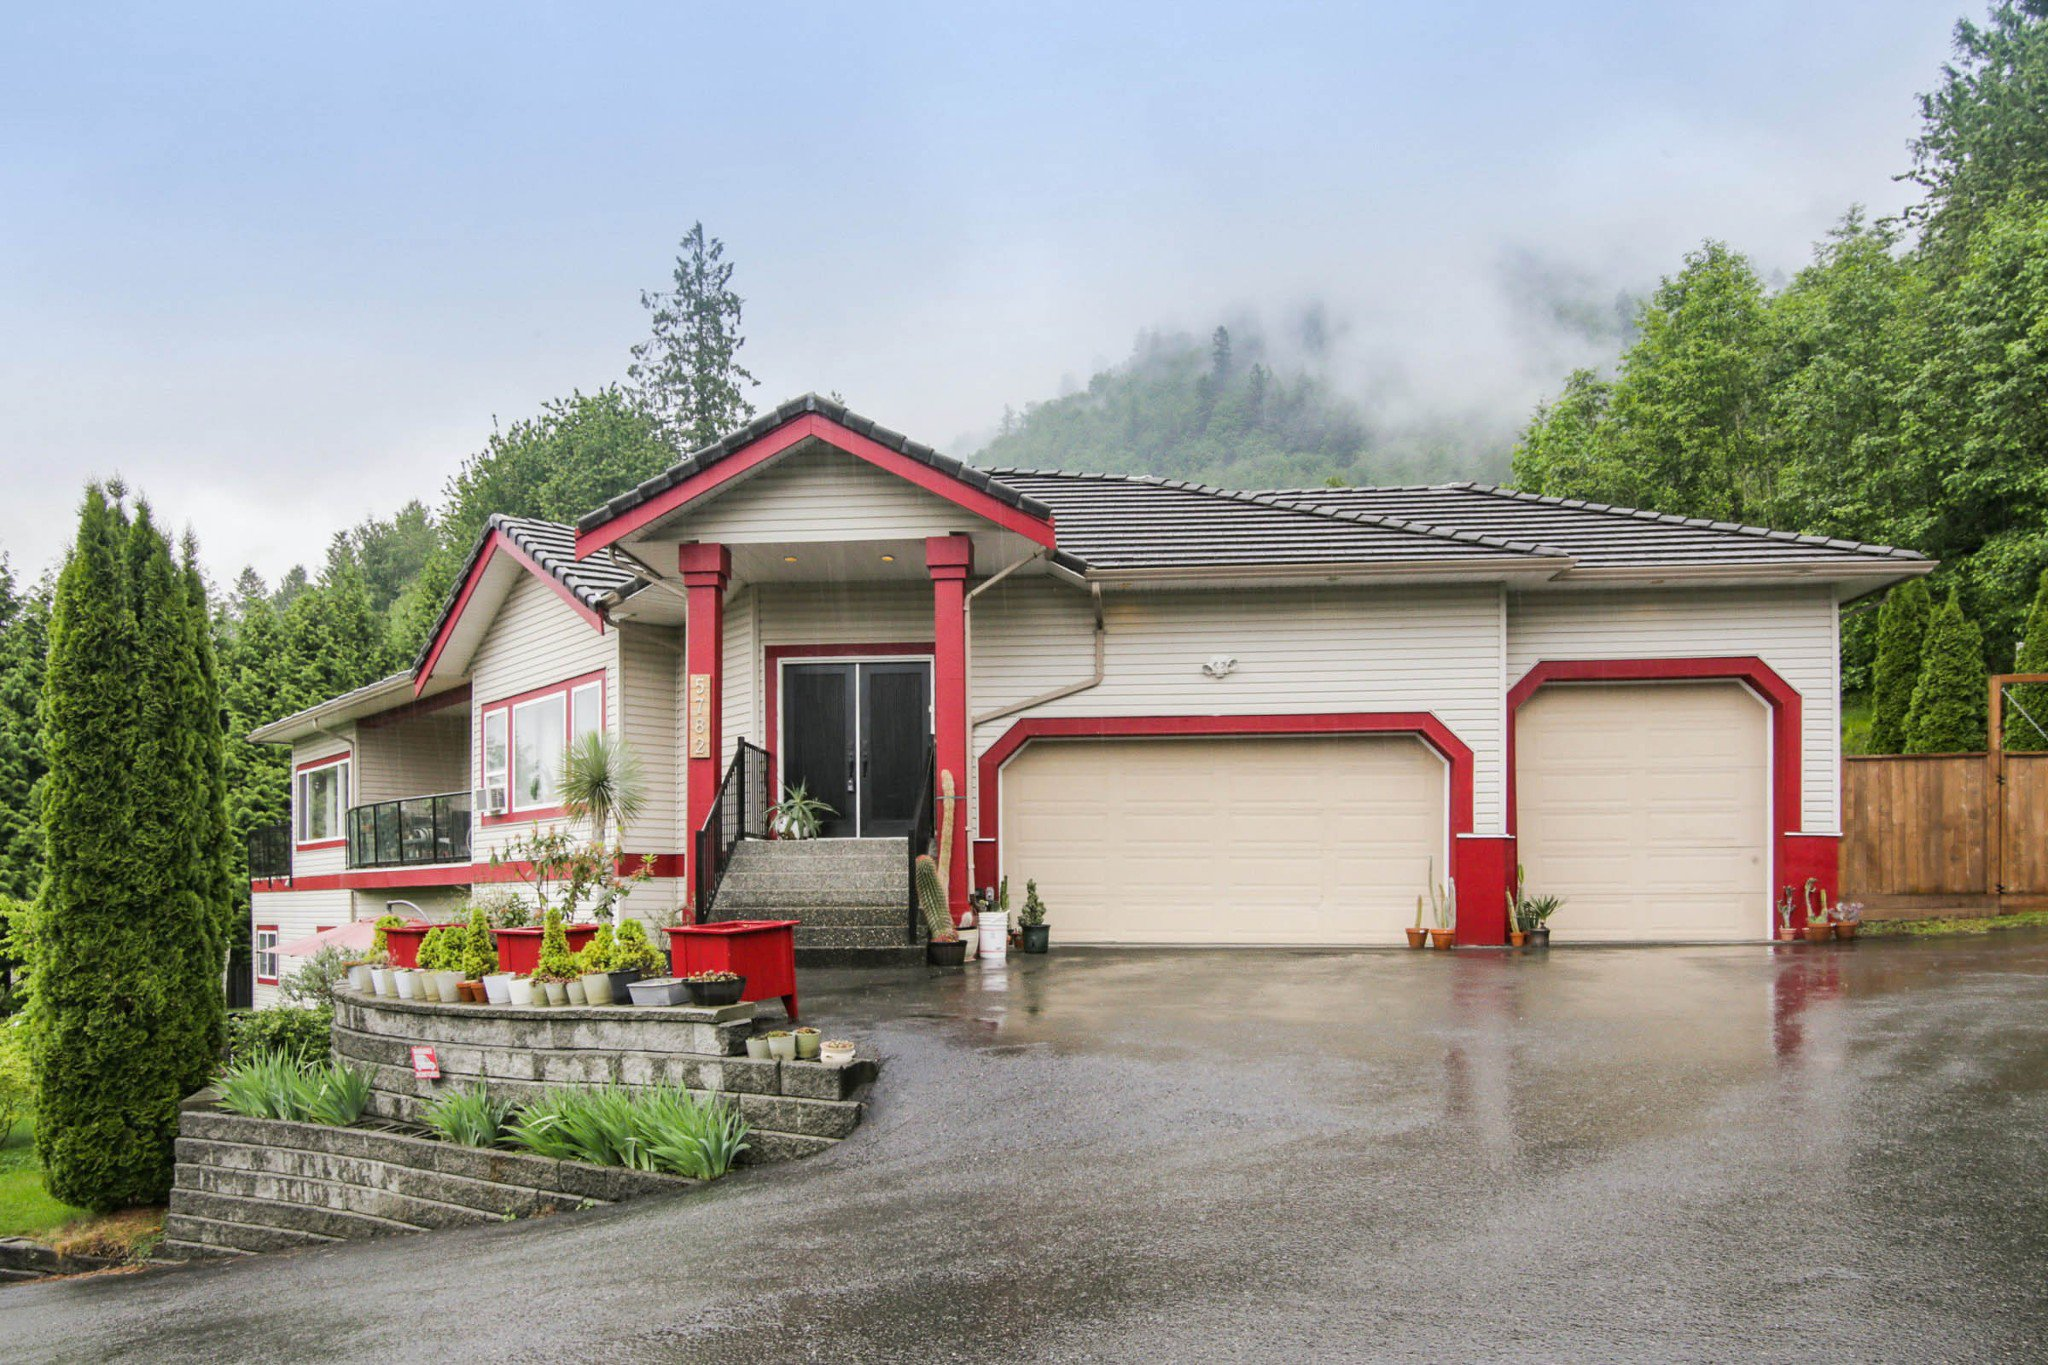 Main Photo: 5782 JINKERSON Road in Chilliwack: Promontory House for sale (Sardis)  : MLS®# R2464891